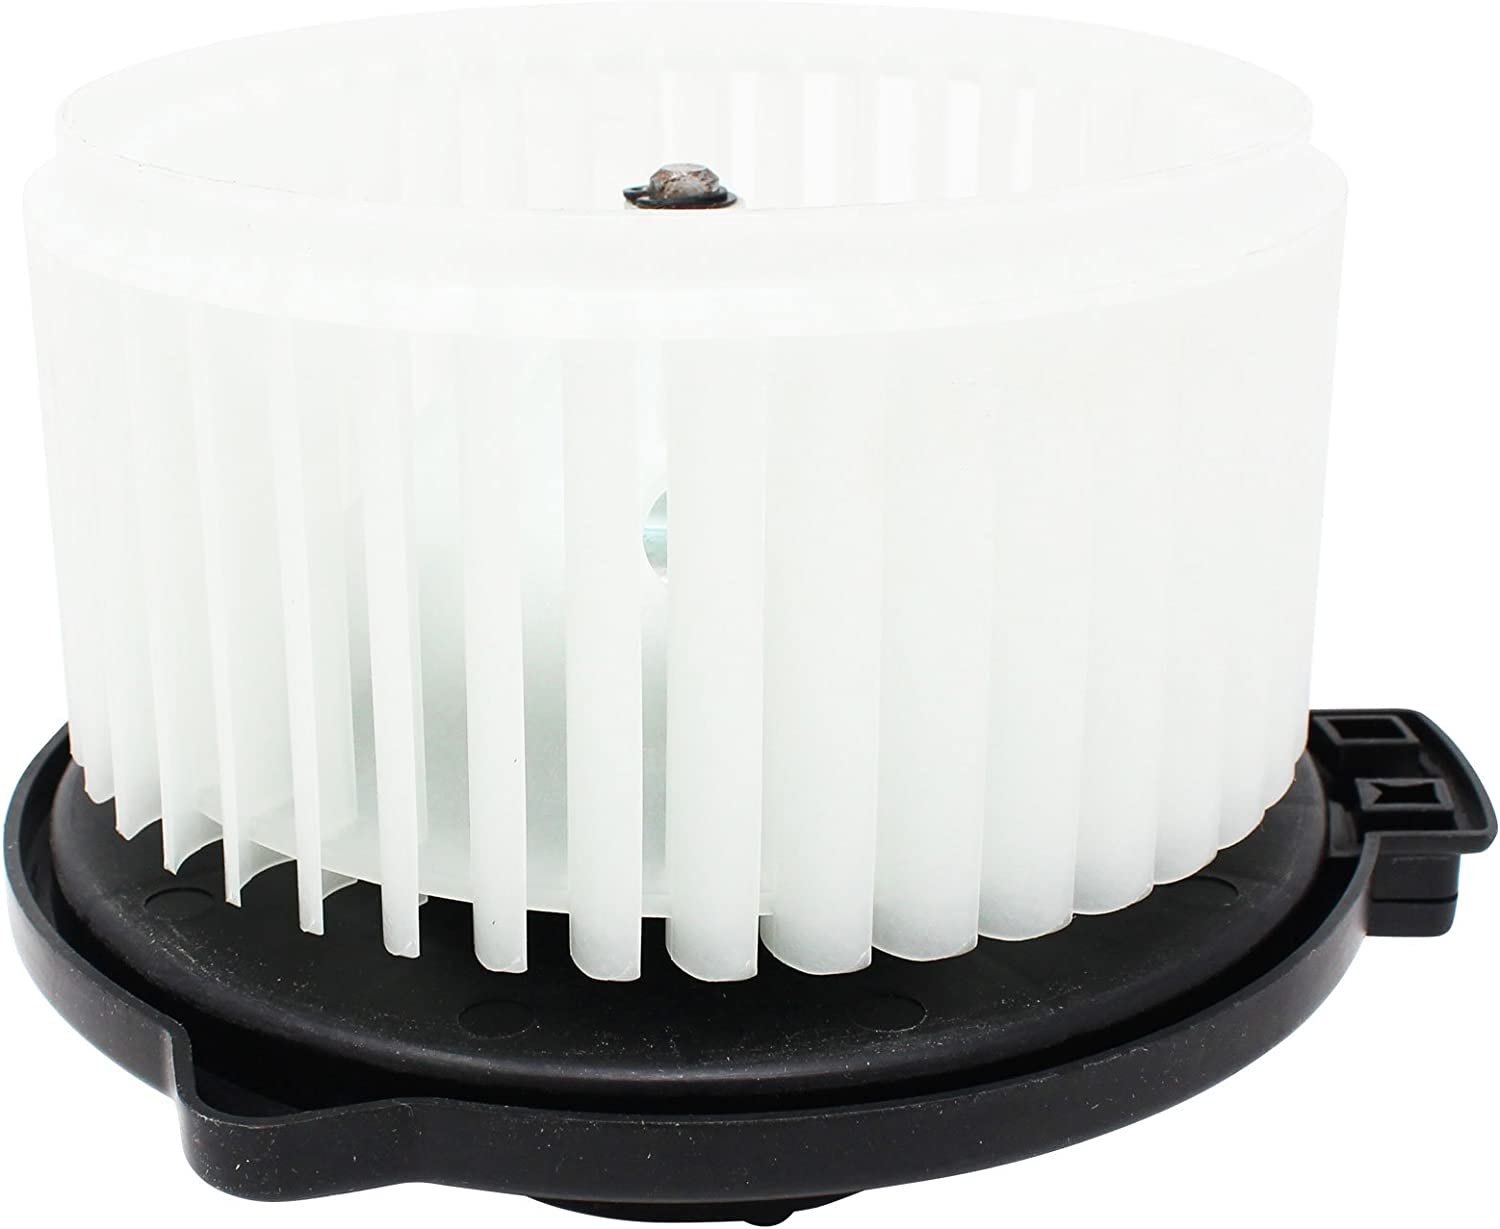 Replacement Blower Assembly for 2003-2008 Toyato Corolla /& Toyota Matrix Compatible with Part Number 87103-02070 /& TYC 700057